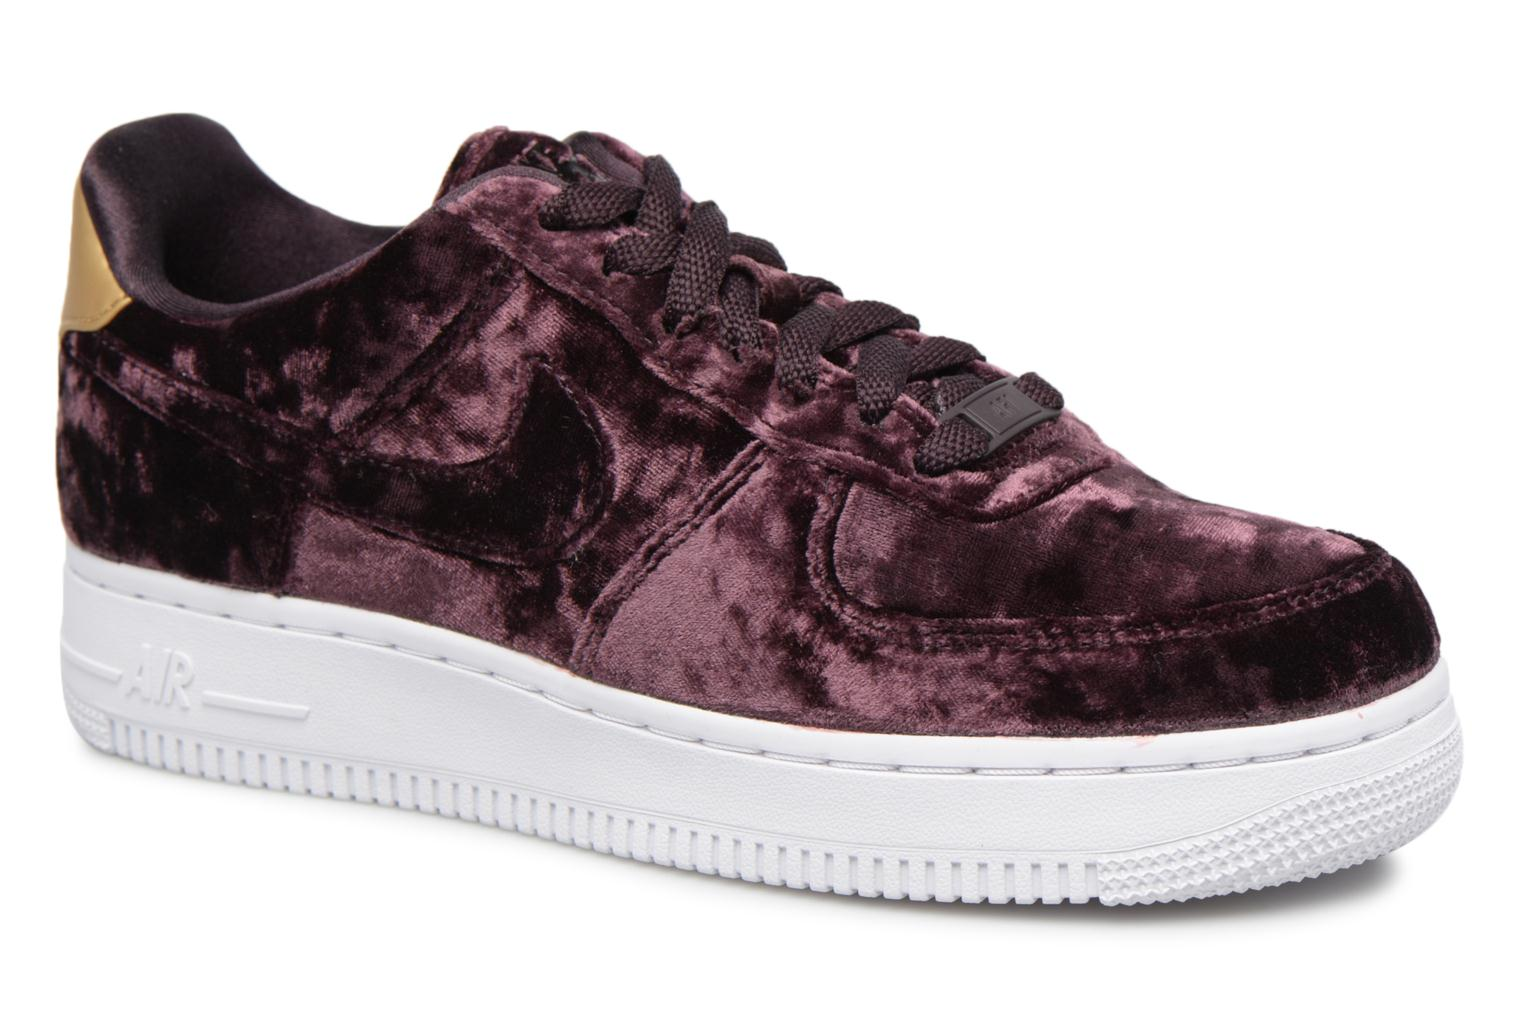 Baskets Nike Wmns Air Force 1 '07 Prm Violet vue détail/paire